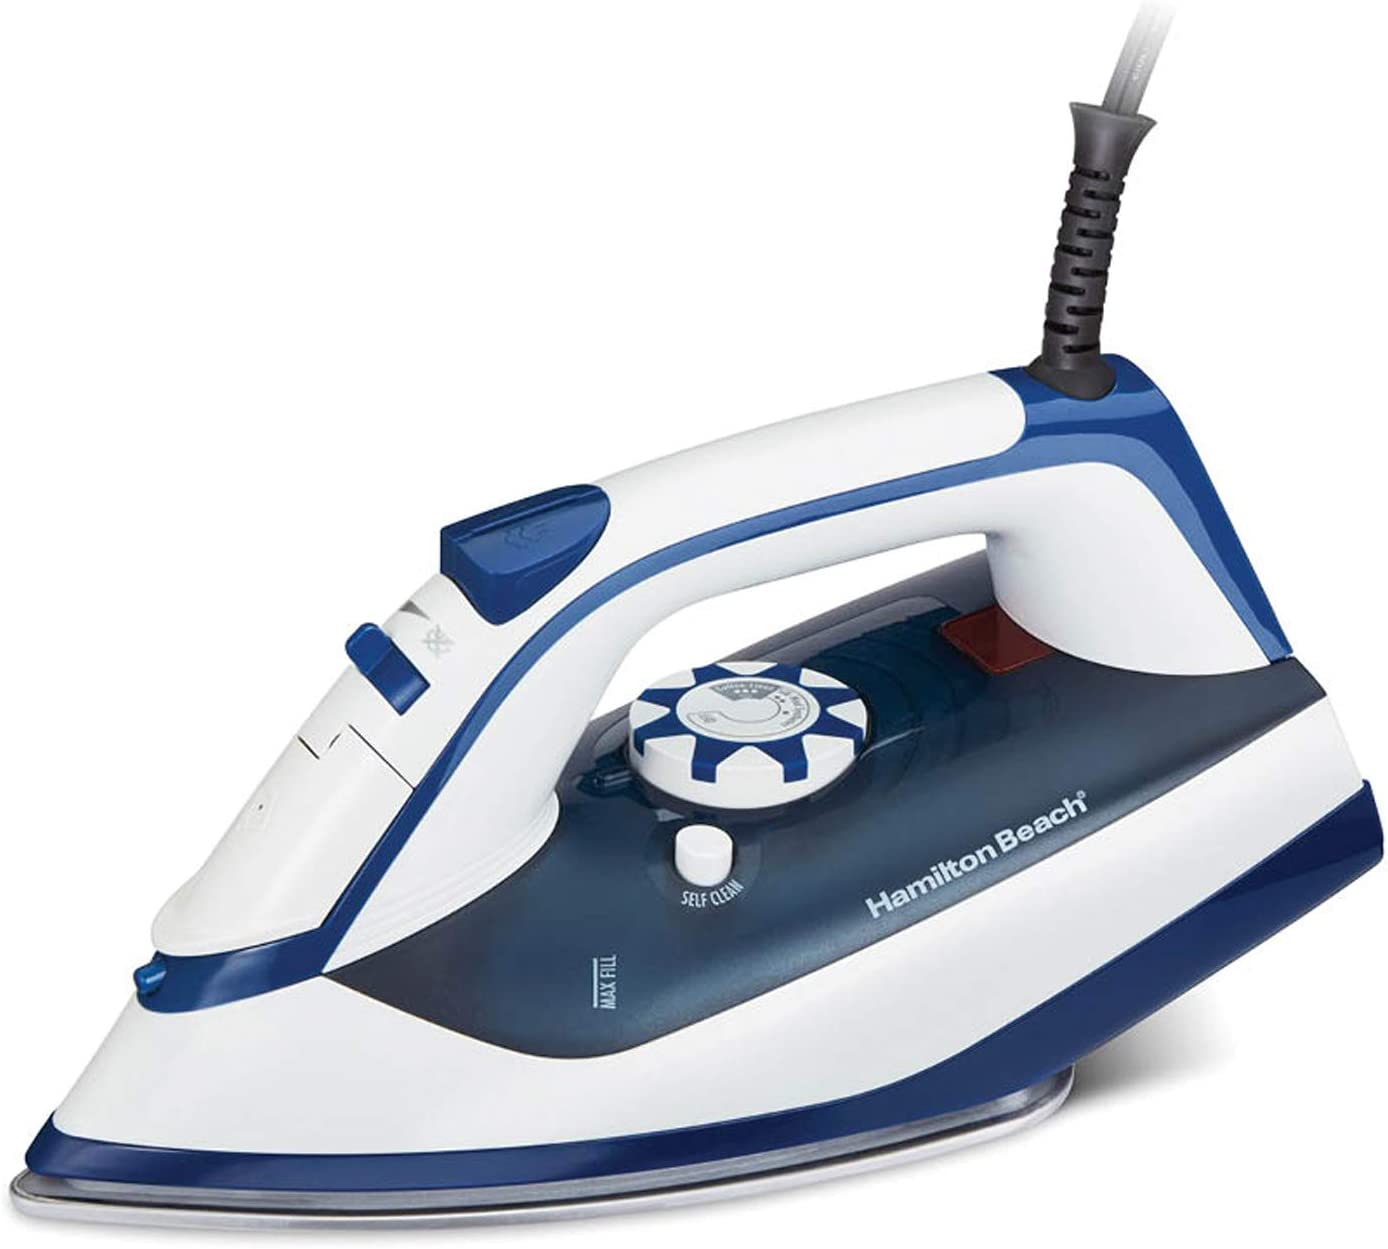 Hamilton Beach Iron & Steamer for Clothes with Smooth Press Stainless Steel Soleplate, 3-Way Auto Shutoff, 1500 Watts for High-Velocity Steam, 10' Cord, Leak-Proof Anti-Drip, White (14650)